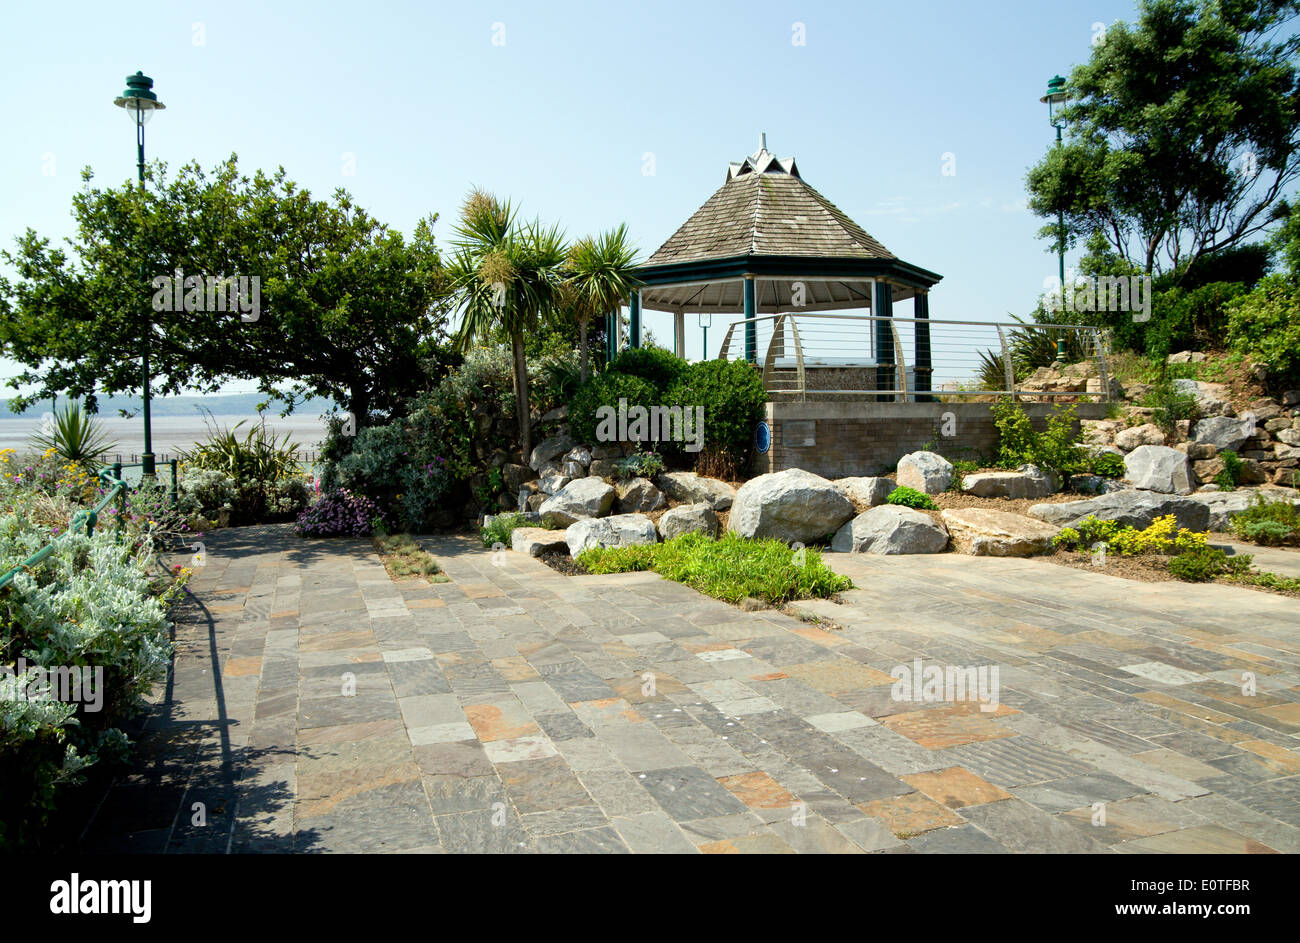 Band stand, Seafront, Weston Super Mare, Somerset, England. - Stock Image